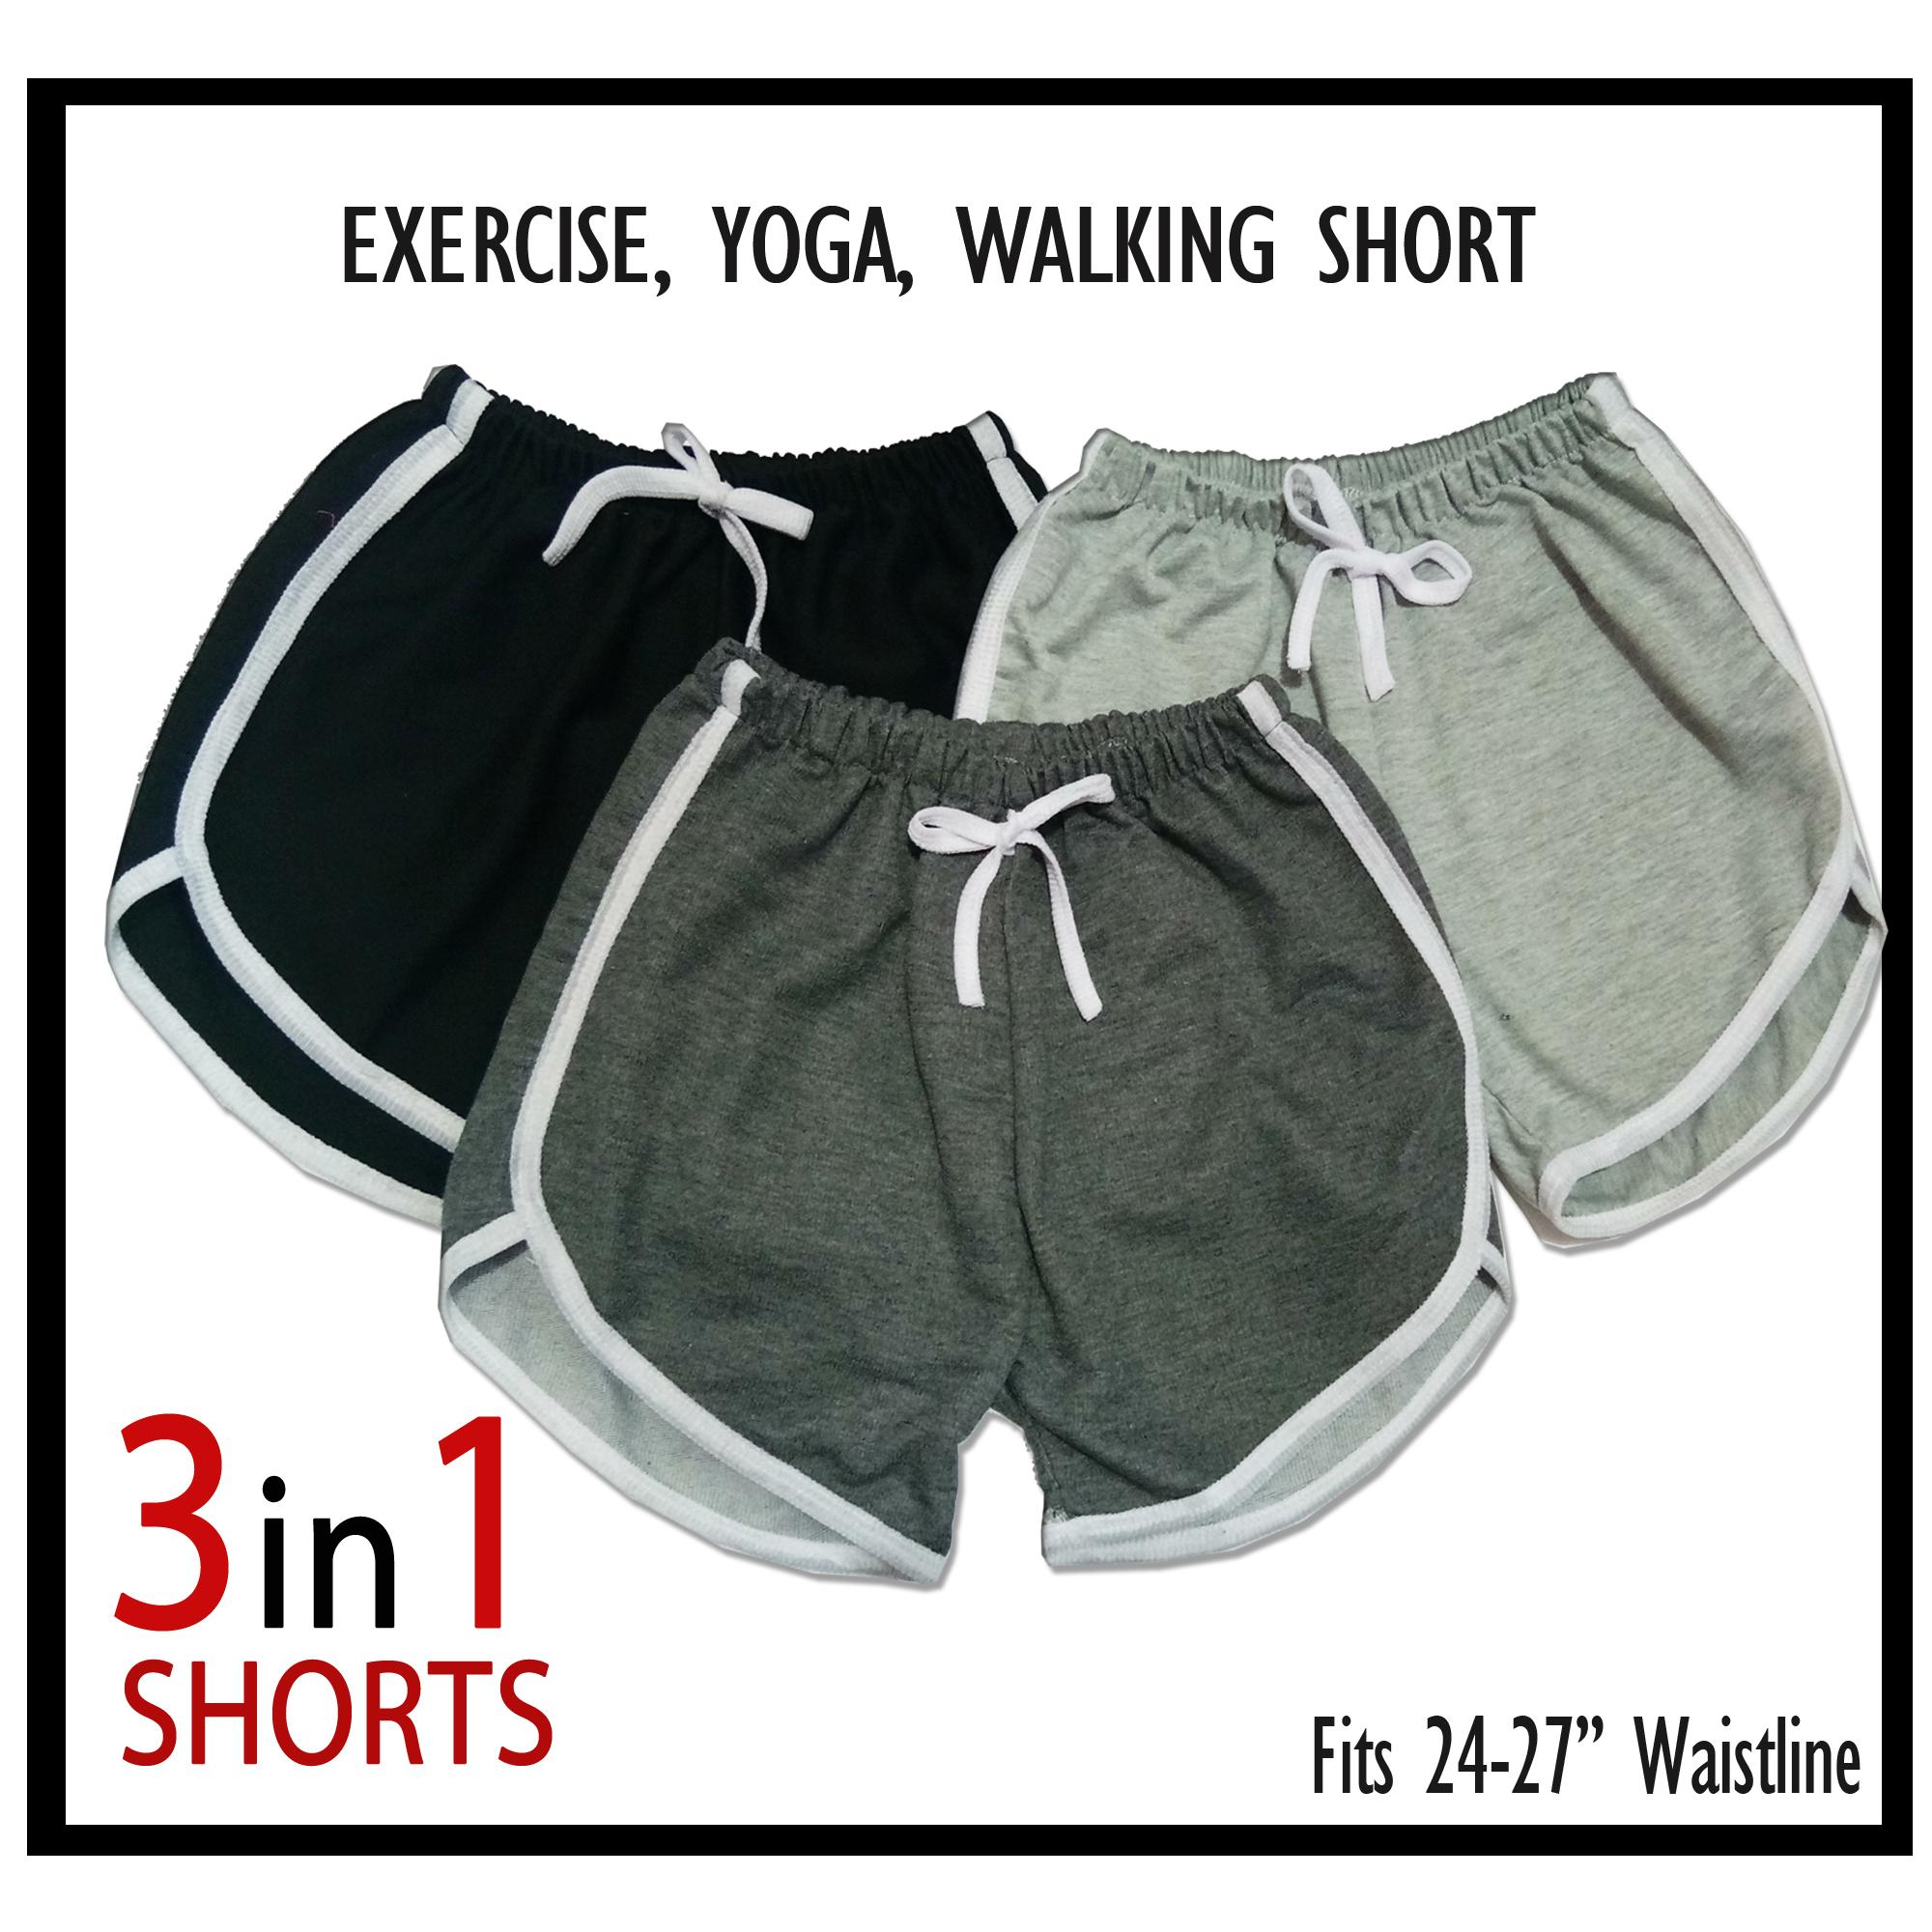 7d527c6a4dd84 3 PIECES - 28 inches Waistline Dolphin Short for Ladies Short Women Ideal  for Yoga